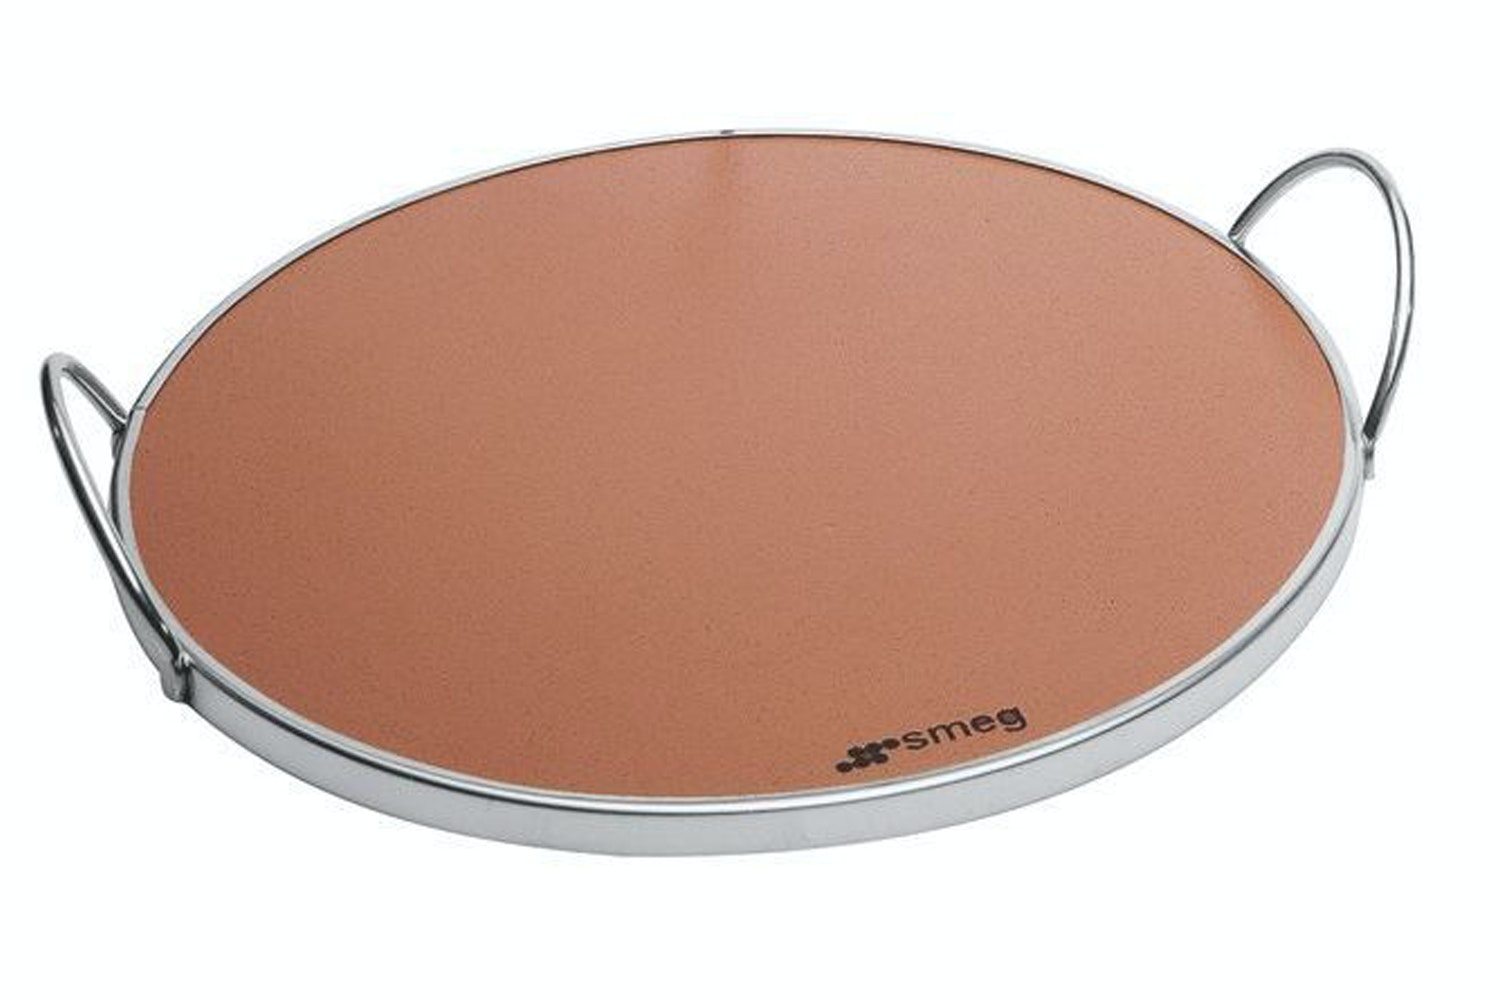 Smeg Pizza Stone with Handle | PRTX